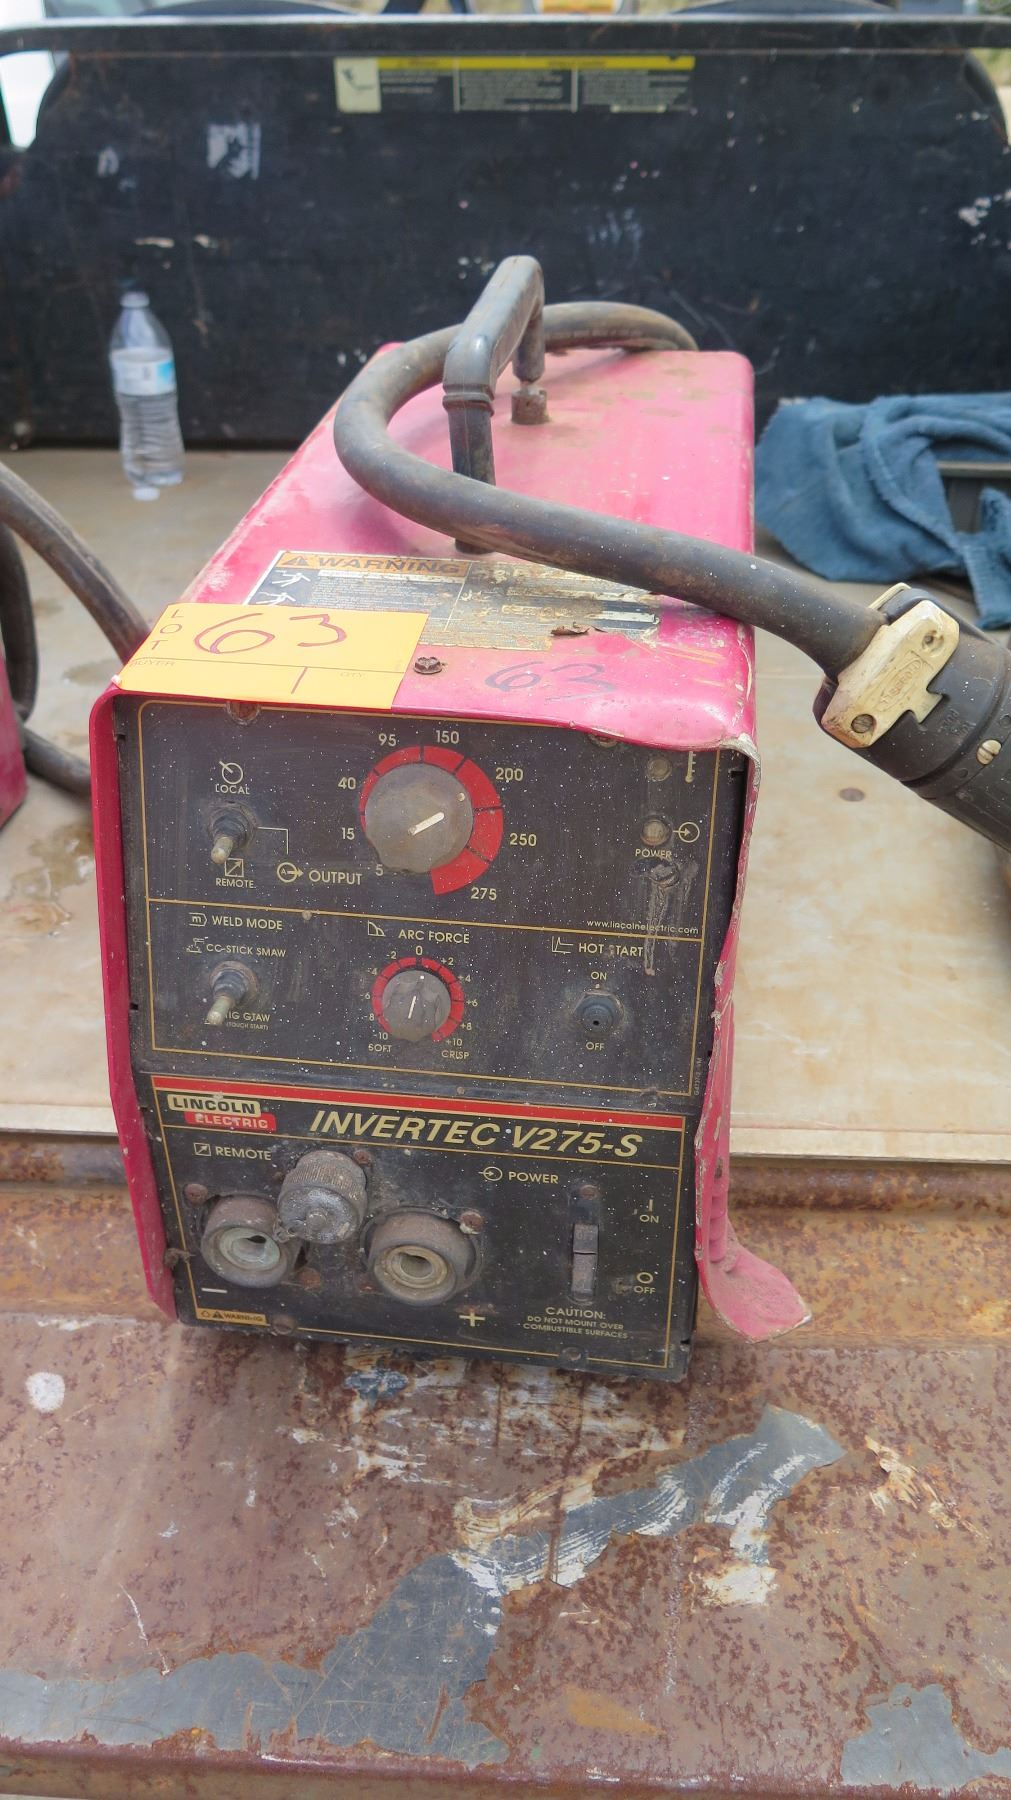 Lincoln Invertec V275 S Stick Welder Oahu Auctions Image 1